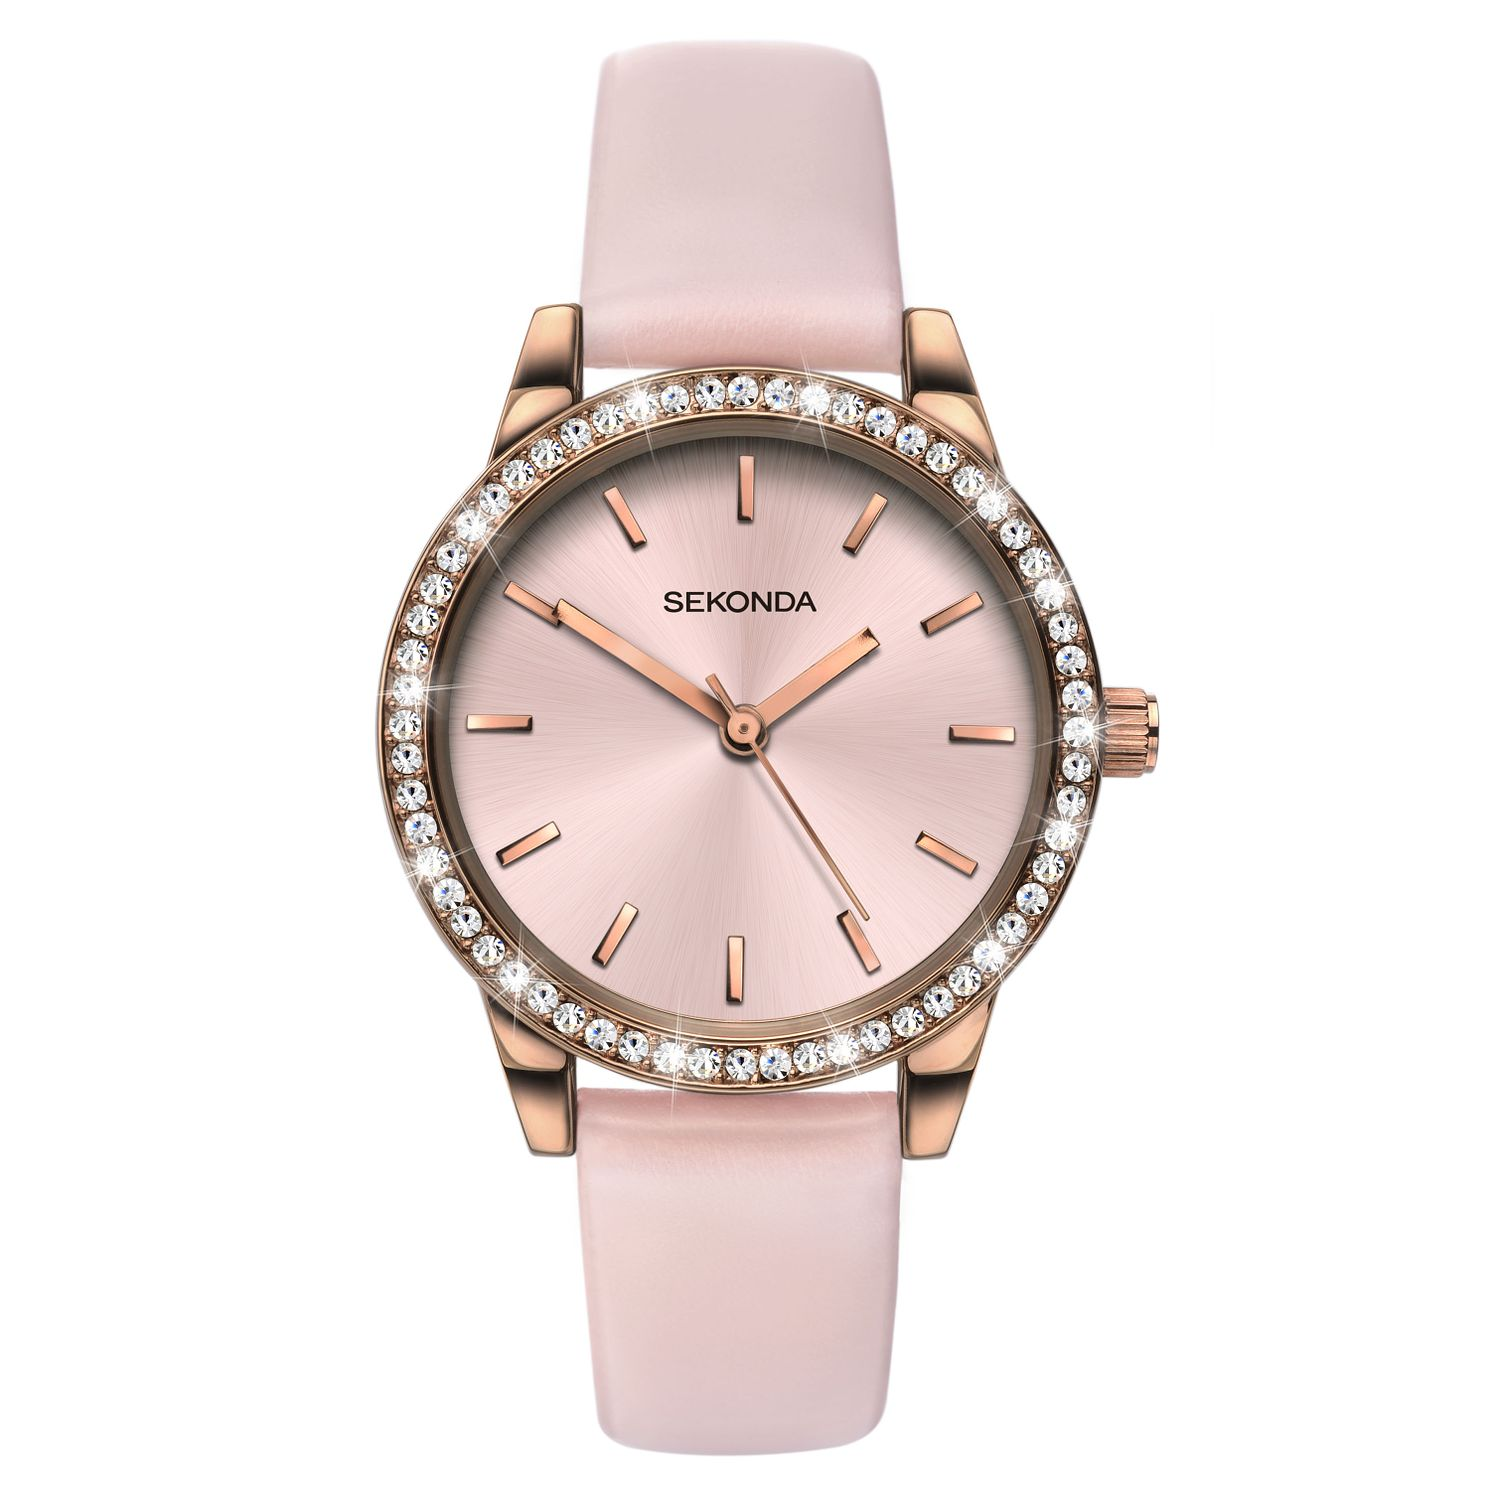 Sekonda Edition Ladies' Crystal Pink Strap Watch - Product number 9795235